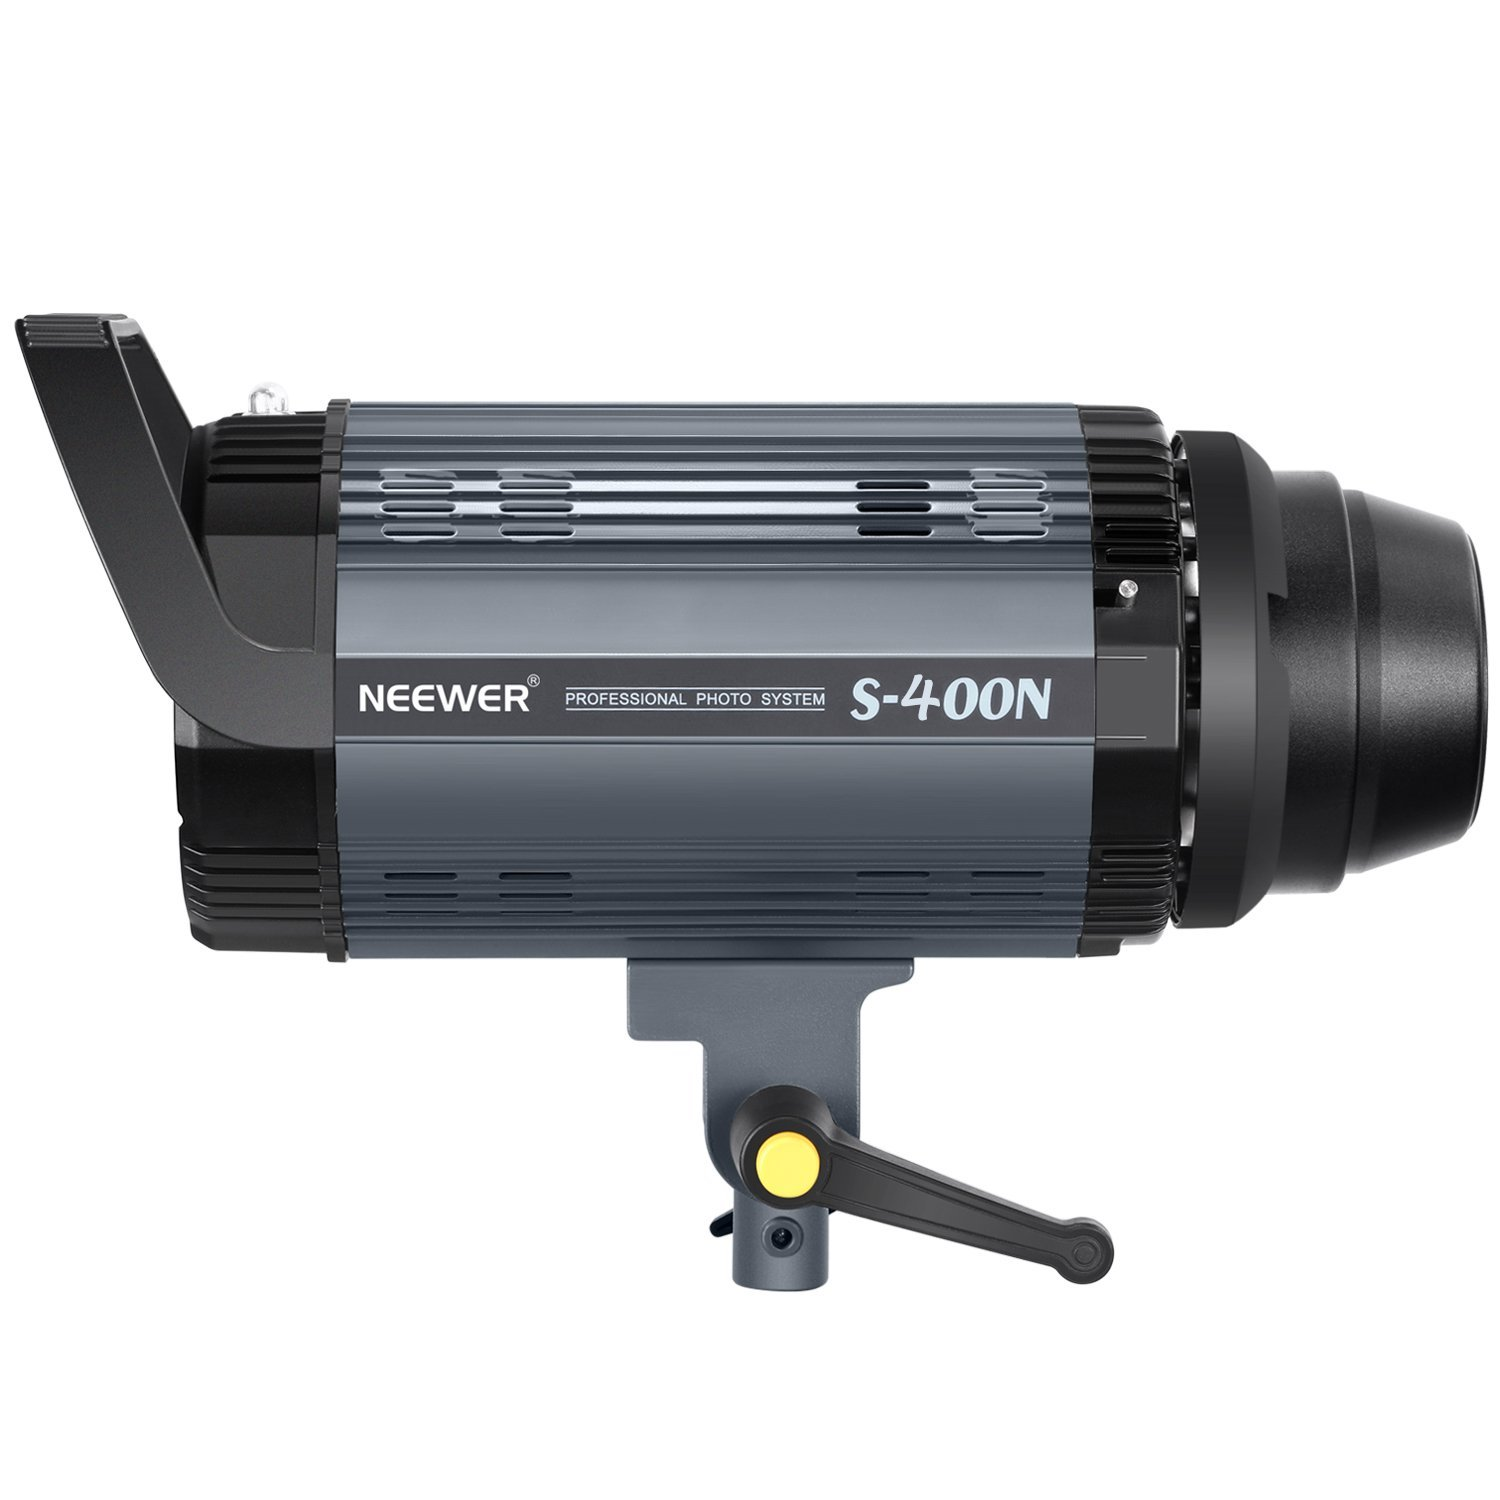 Neewer Professional Studio Flash Strobe Light Monolight - 400W GN.60 5600K with Modeling Lamp, Aluminum Alloy Construction for Indoor Studio Location Model Photography and Portrait Photography(S400N)